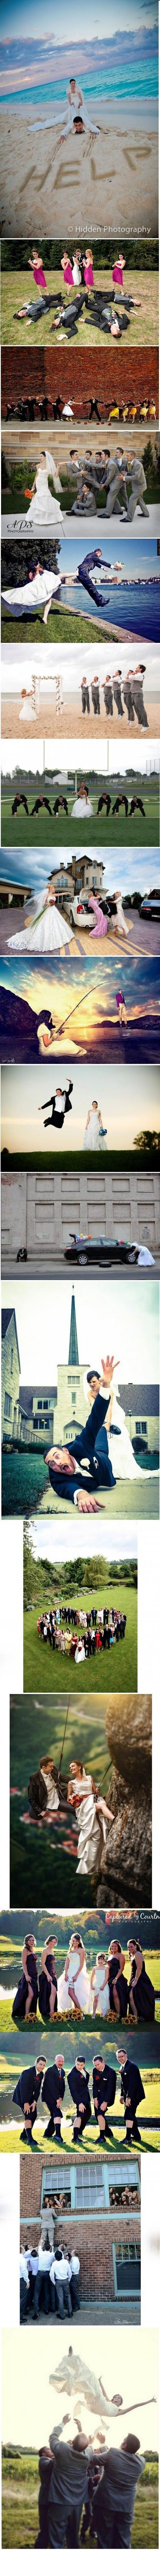 Funny weddings photo strip